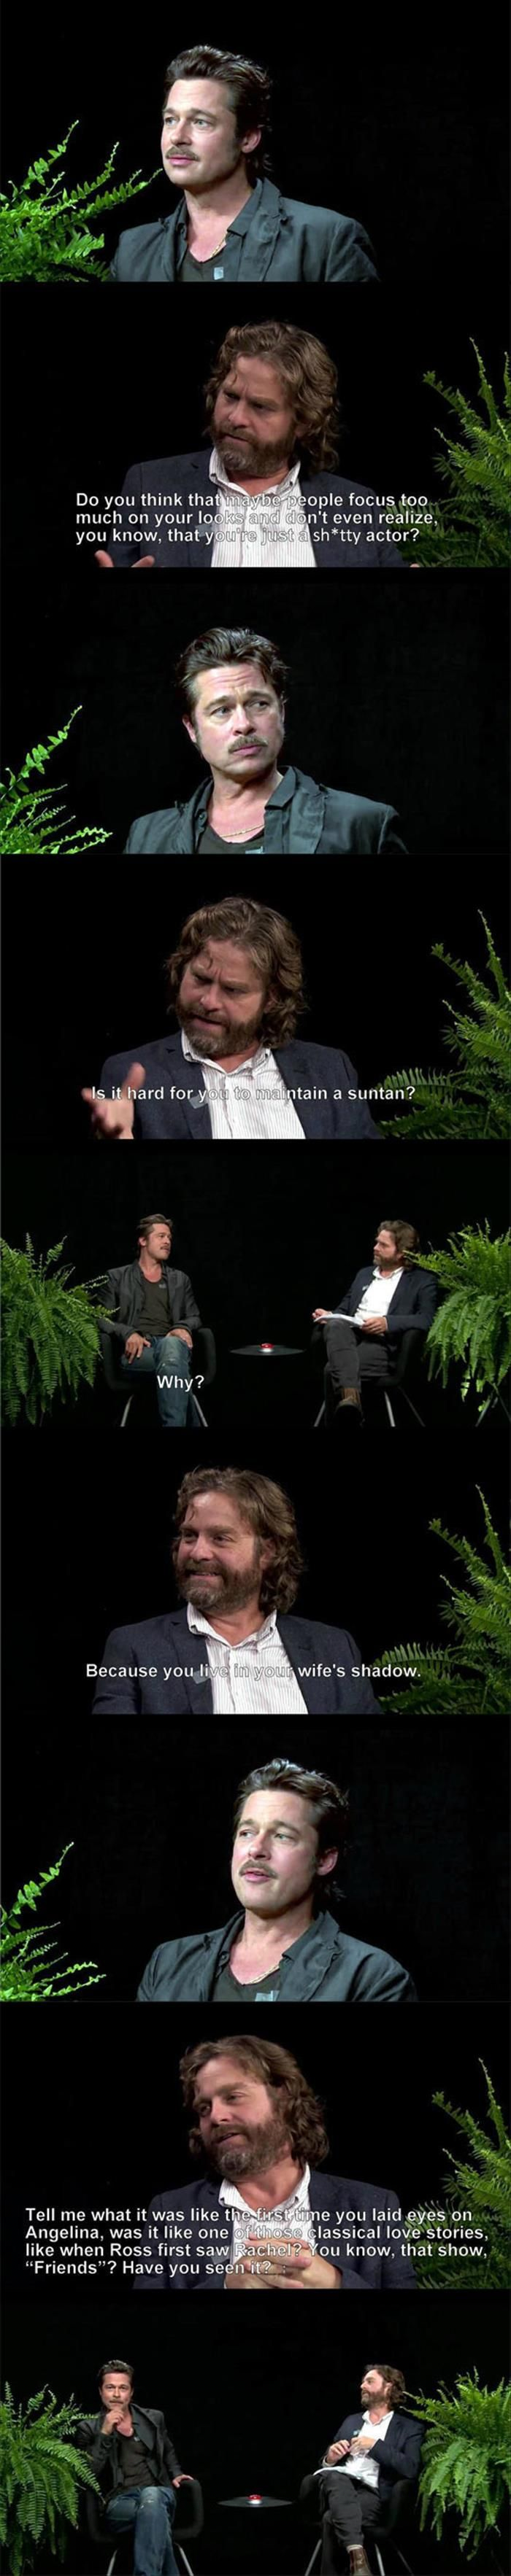 Brad Pitt On Between Two Ferns with Zach Galifianakis  20 Pics